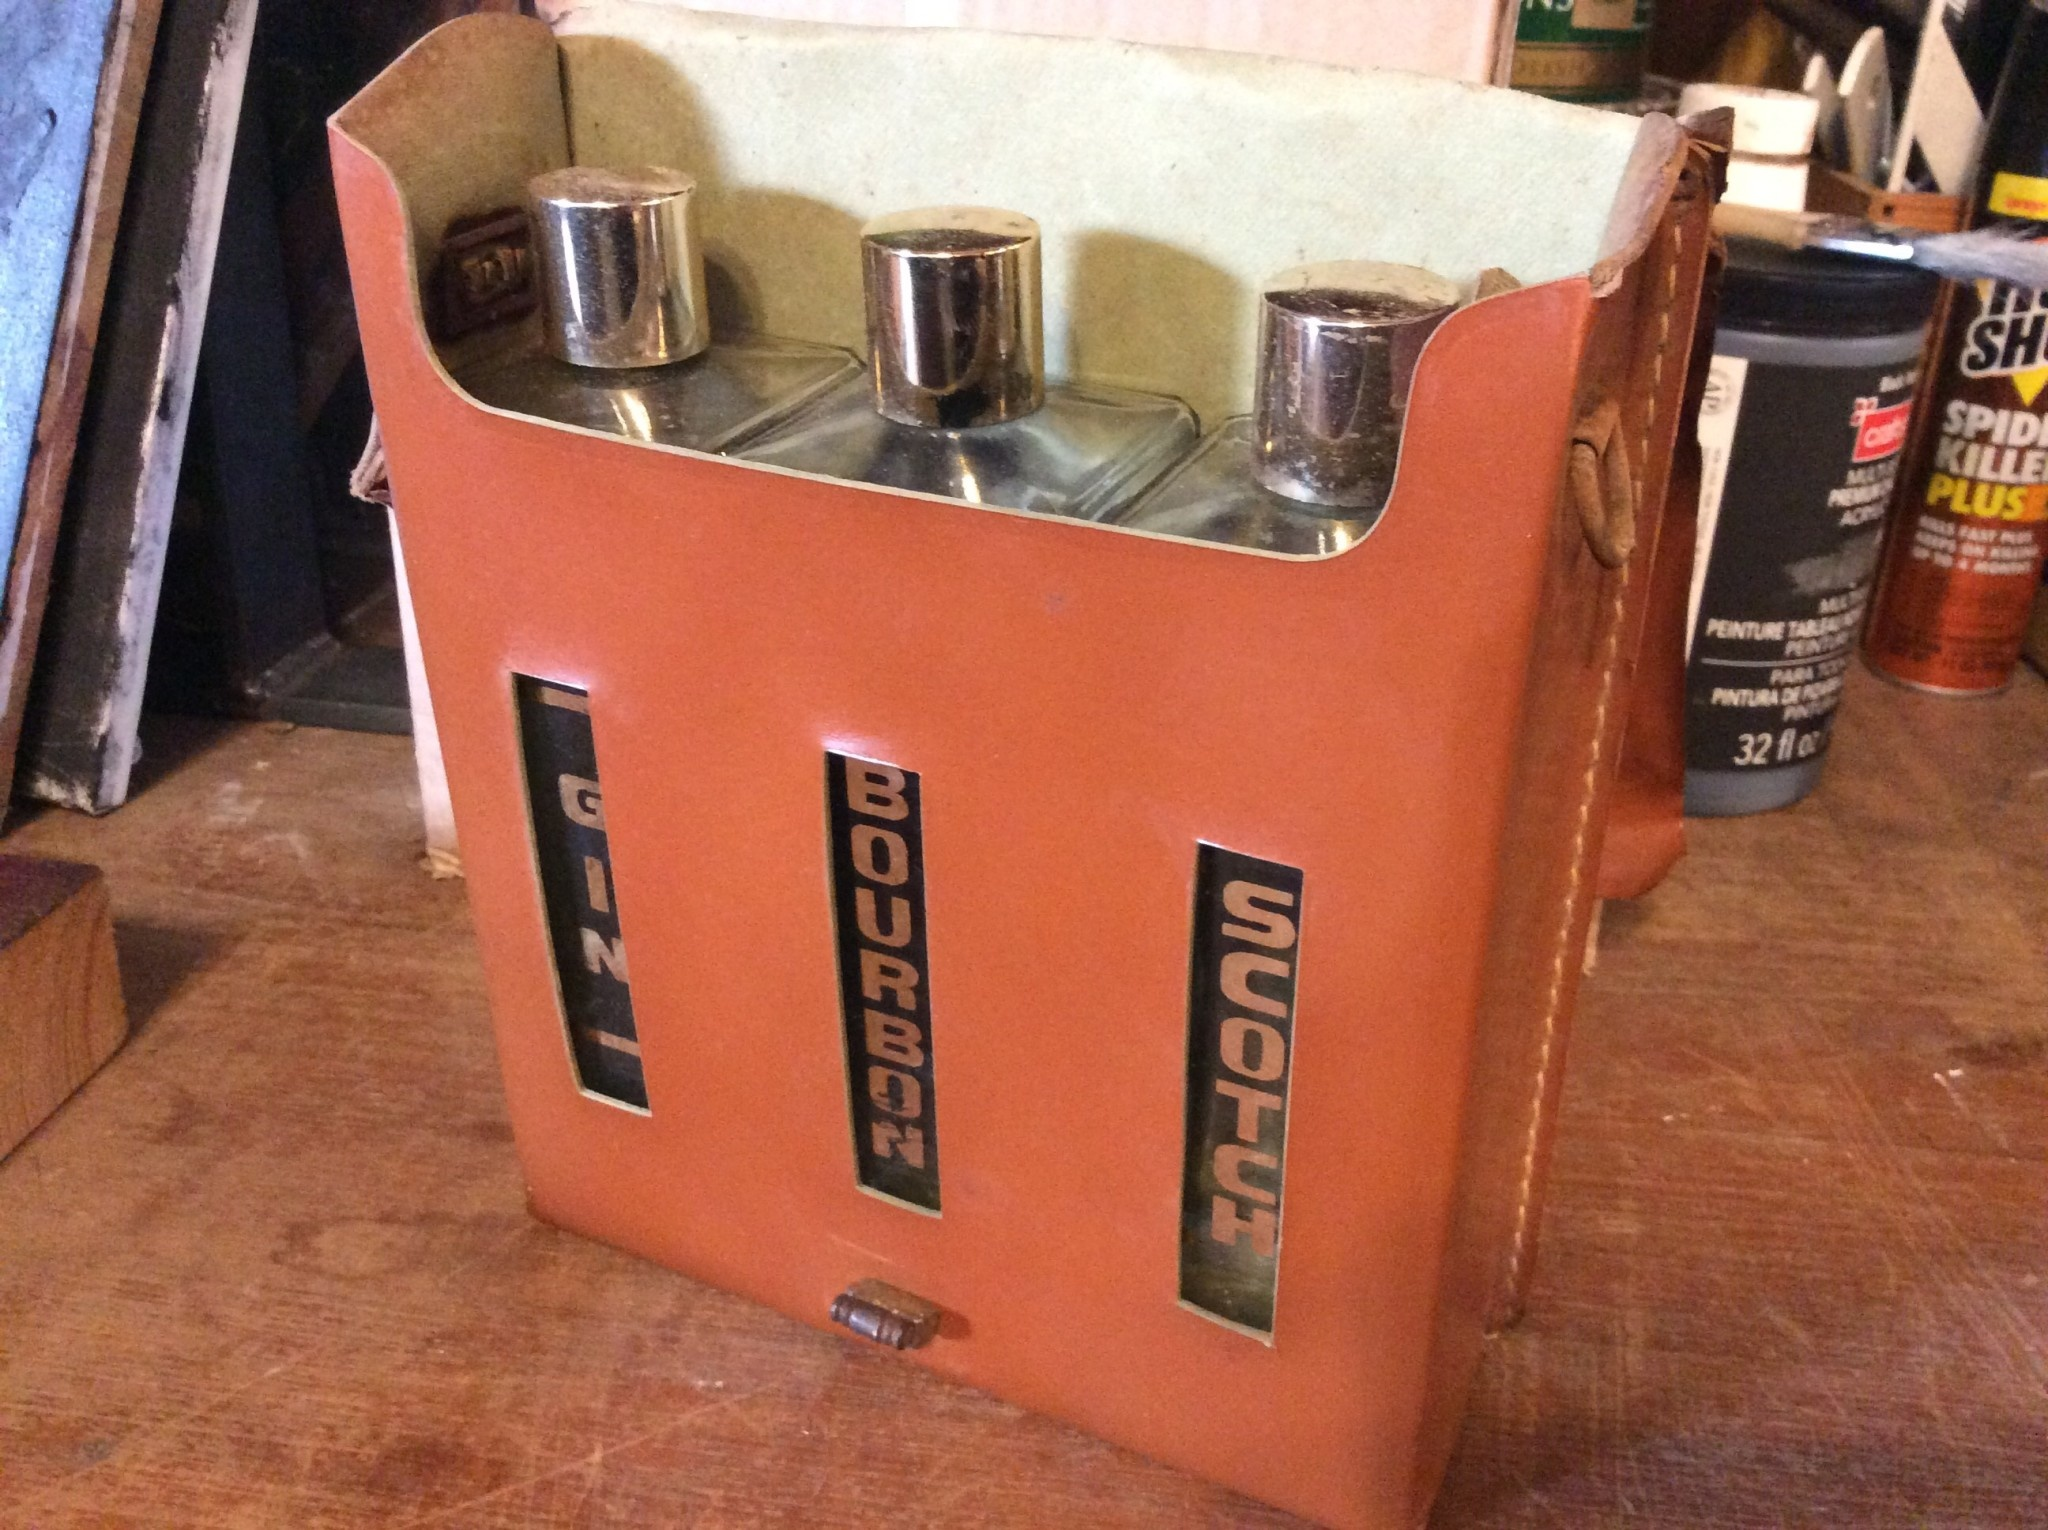 Gin bourbon scotch case